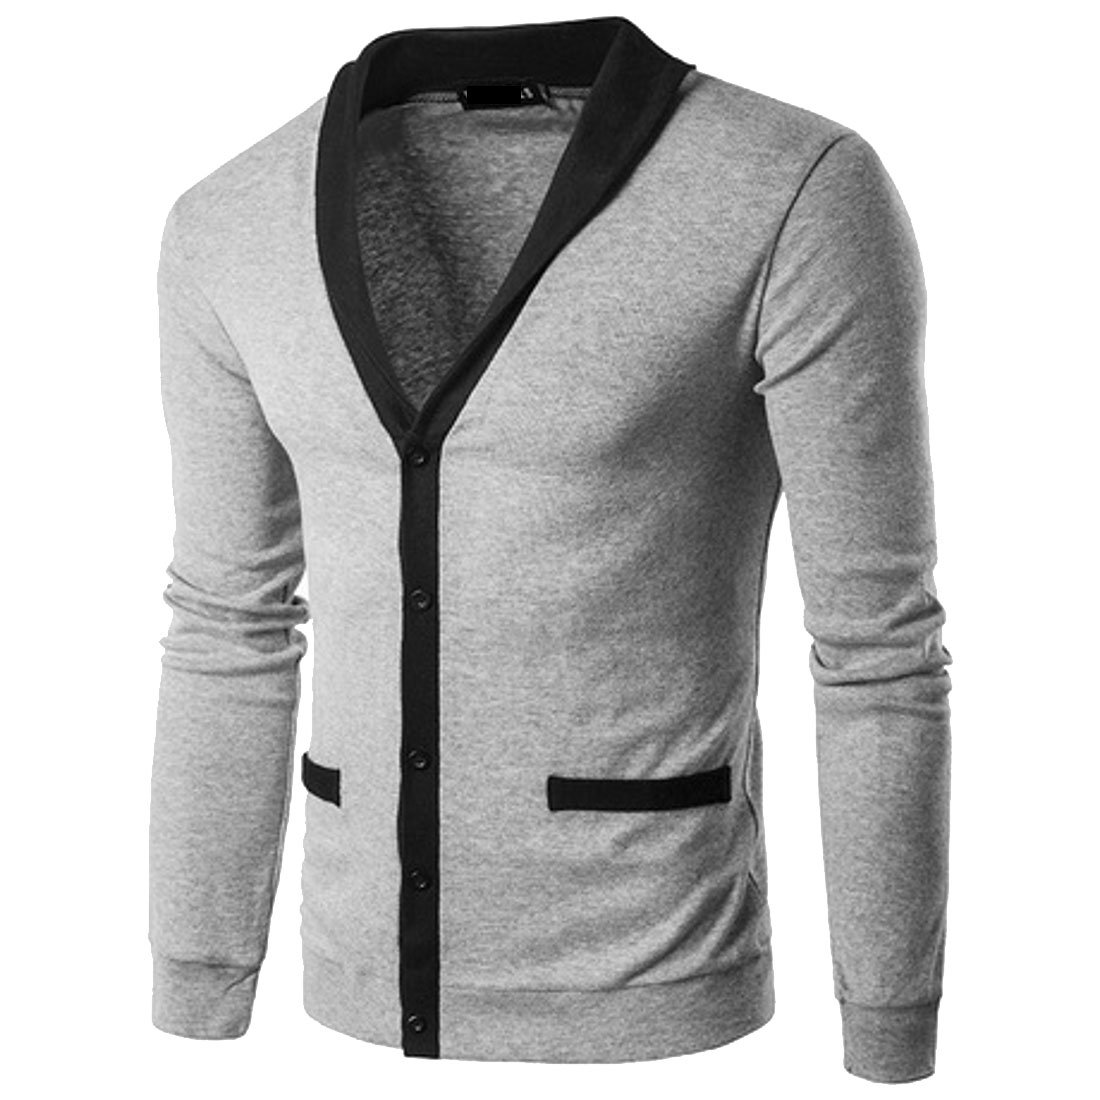 Domple Mens Multicolor Plus Size Autumn Block Color Shawl Collar Button Down Knitwear Cardigan